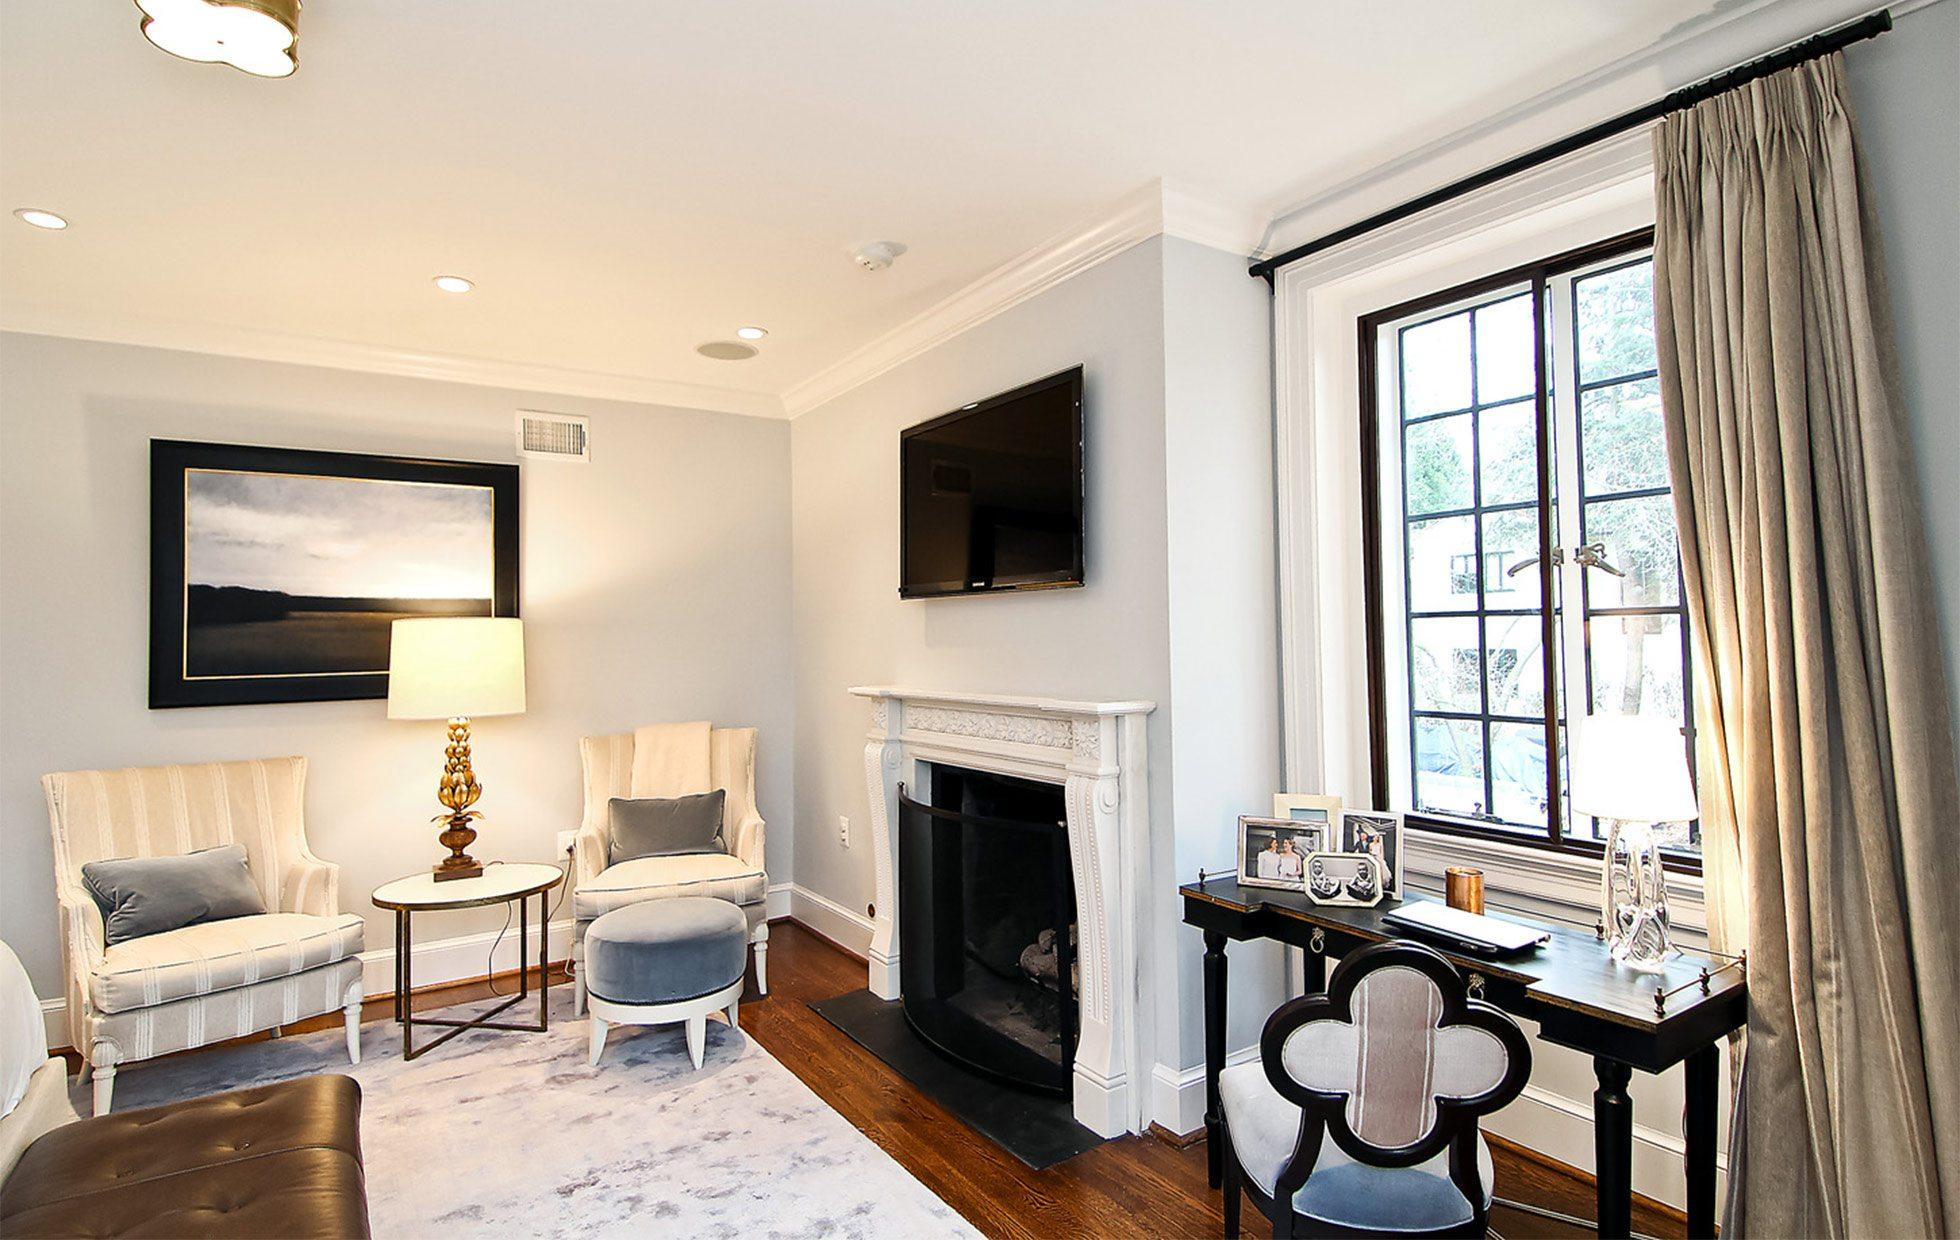 5881fffe07e5a2446-Belmont-Road-NW-Washington-DC-Obamas-New-Home-Master-Sitting-Room